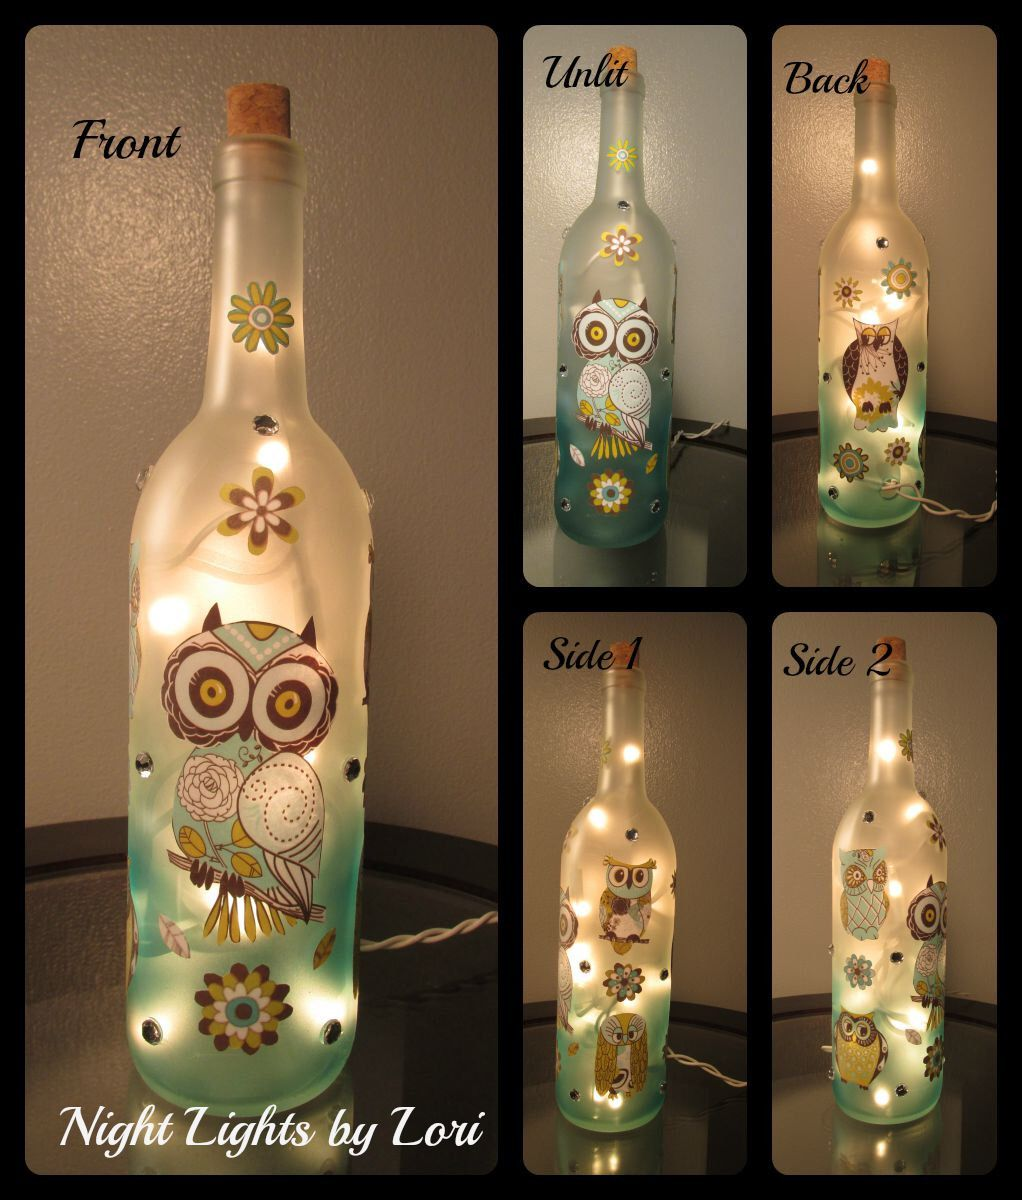 Owl wine bottle night light by nightlightsbylori on etsy httpswww owl wine bottle night light by nightlightsbylori on etsy httpsetsy hobby ideaswine solutioingenieria Images